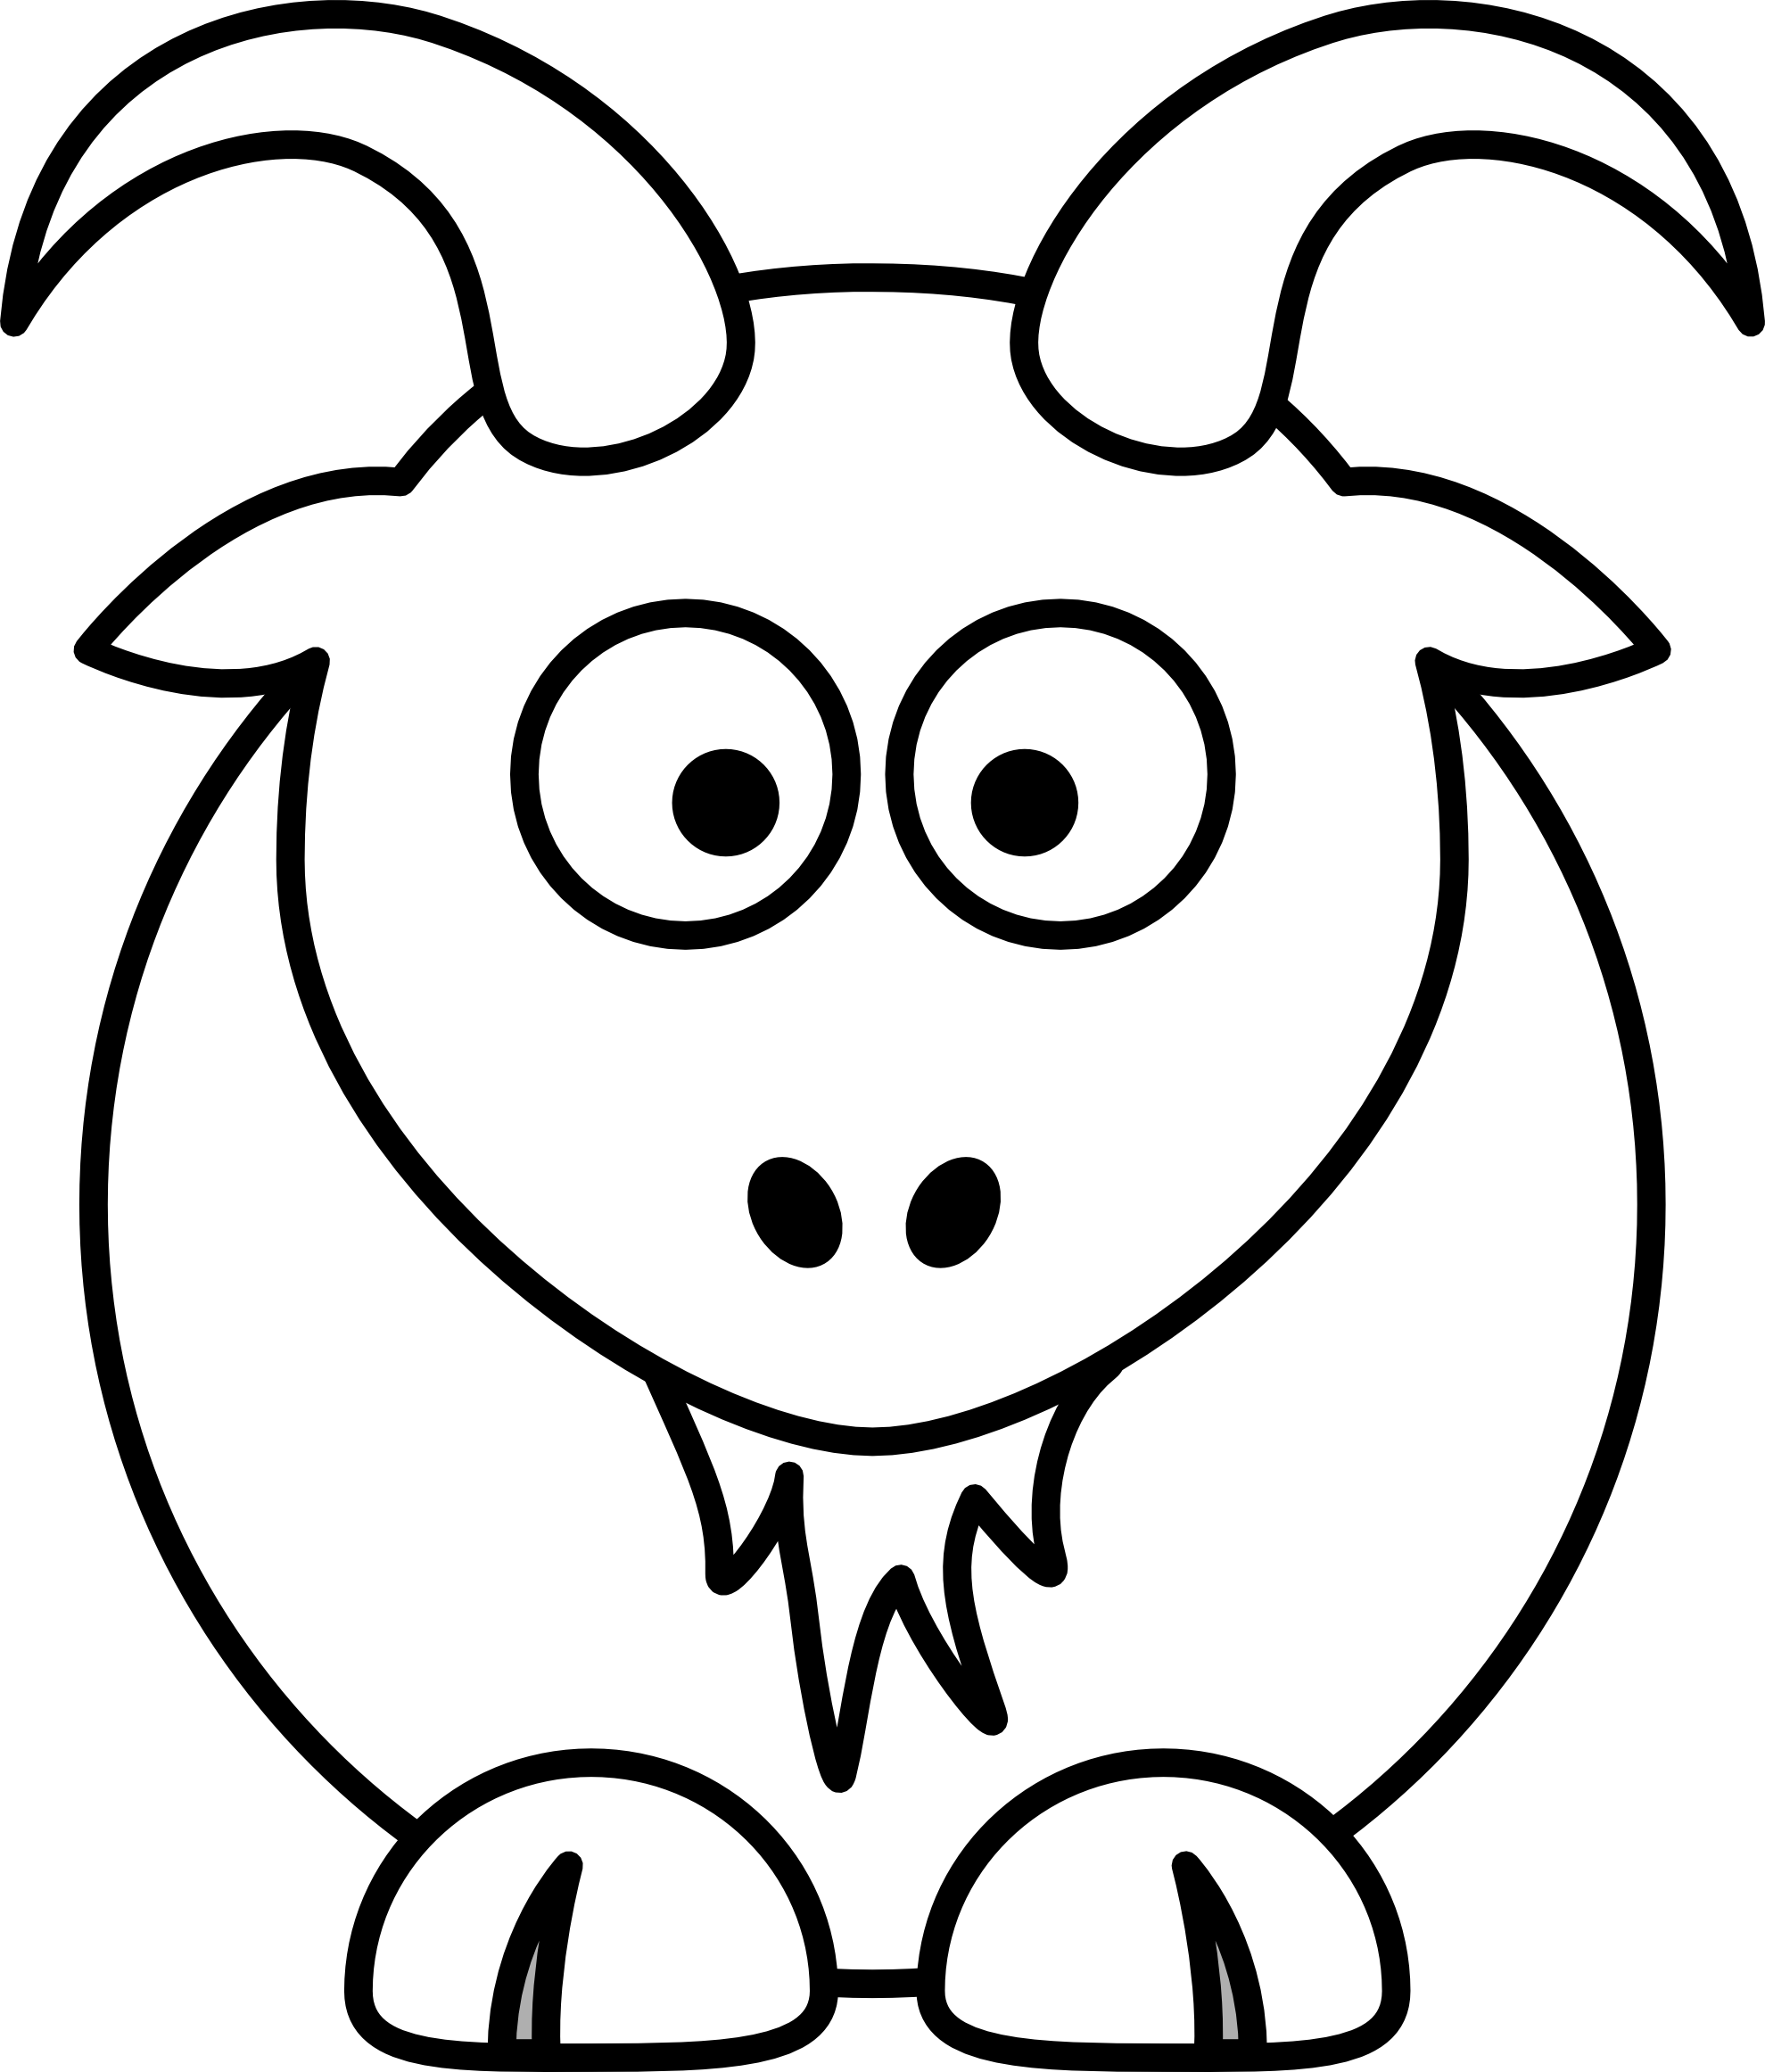 Zoo animal faces clipart black and white image freeuse stock Free Black And White Cartoon Animals, Download Free Clip Art ... image freeuse stock